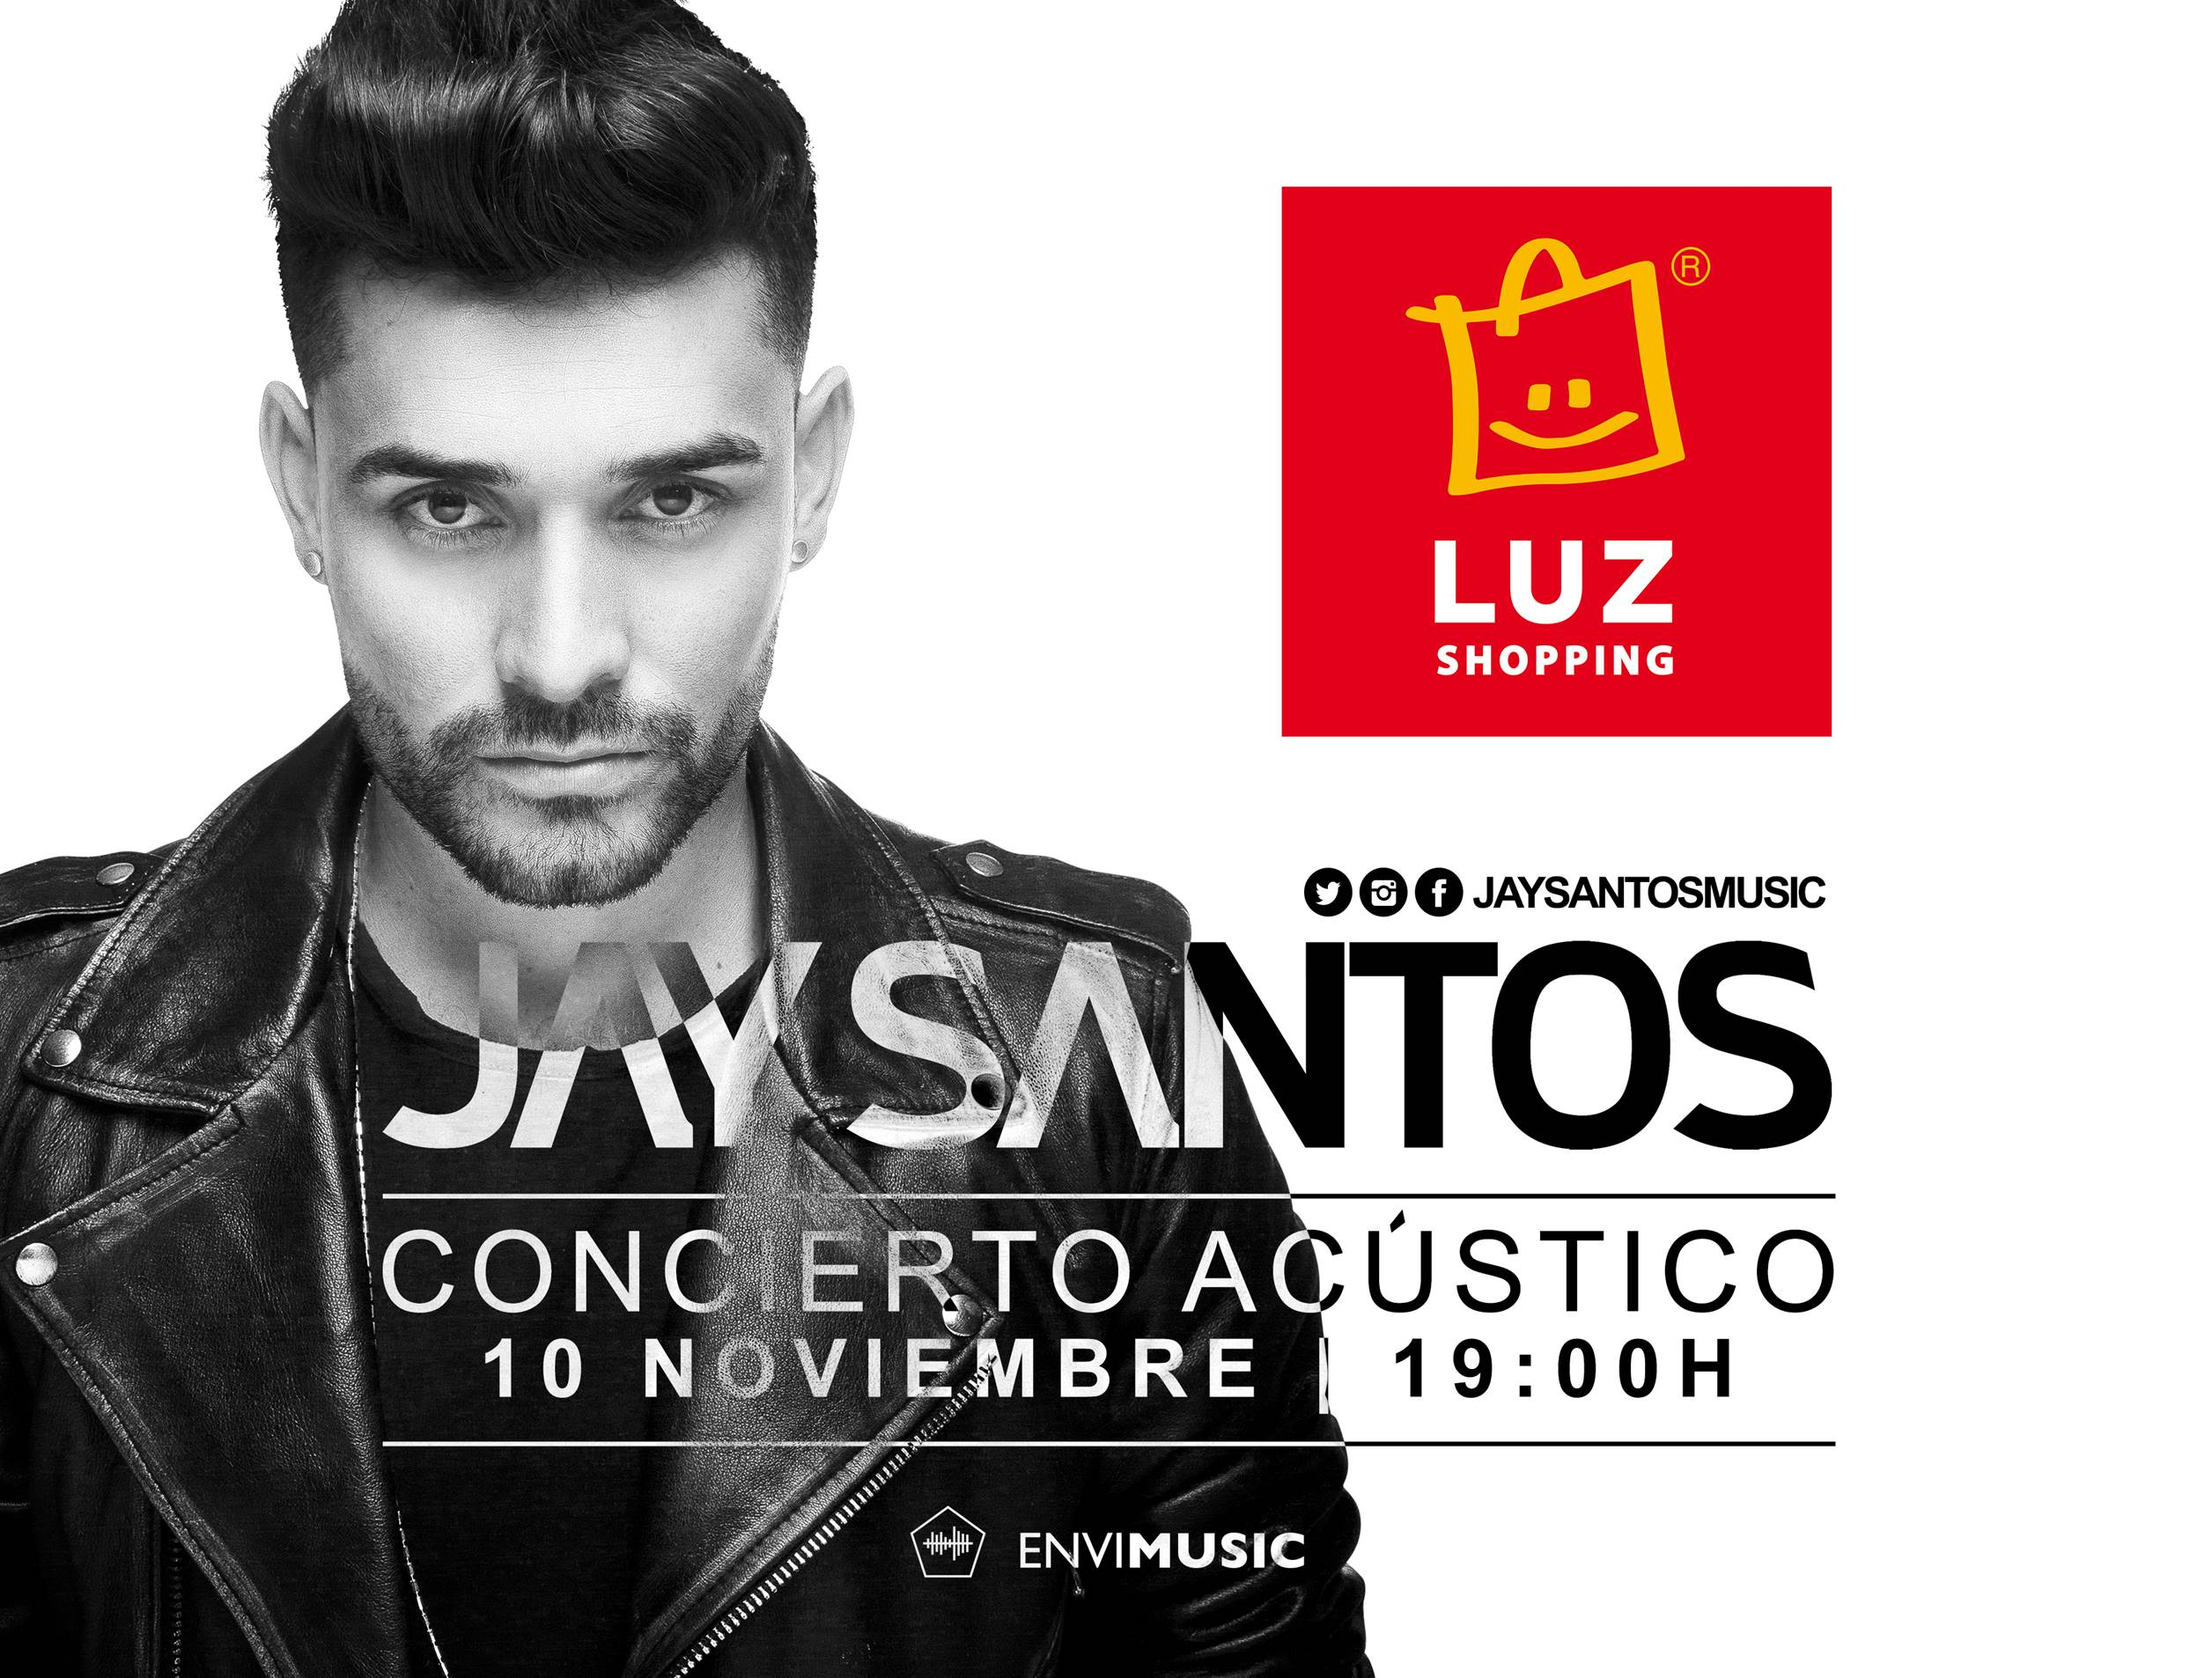 jay-santos-luz-shopping